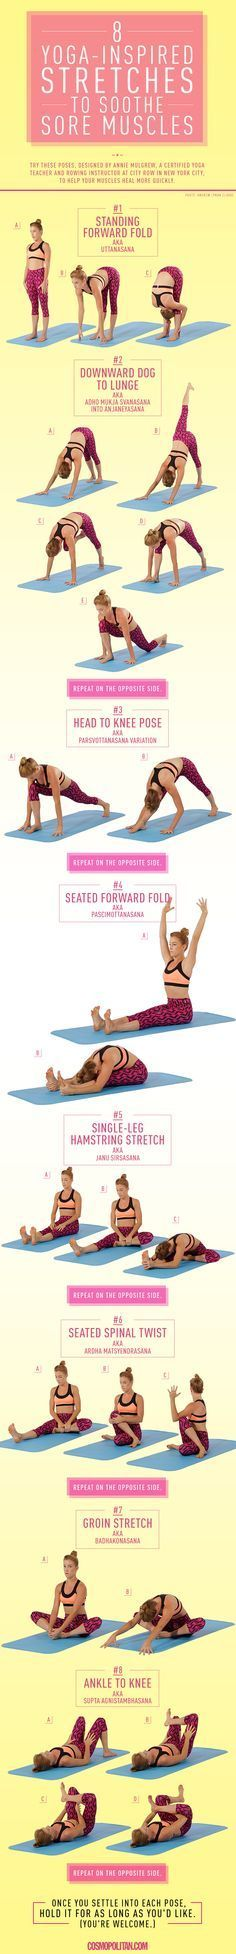 Whether it's six-pack abs, gain muscle or weight loss, these workouts will hel...